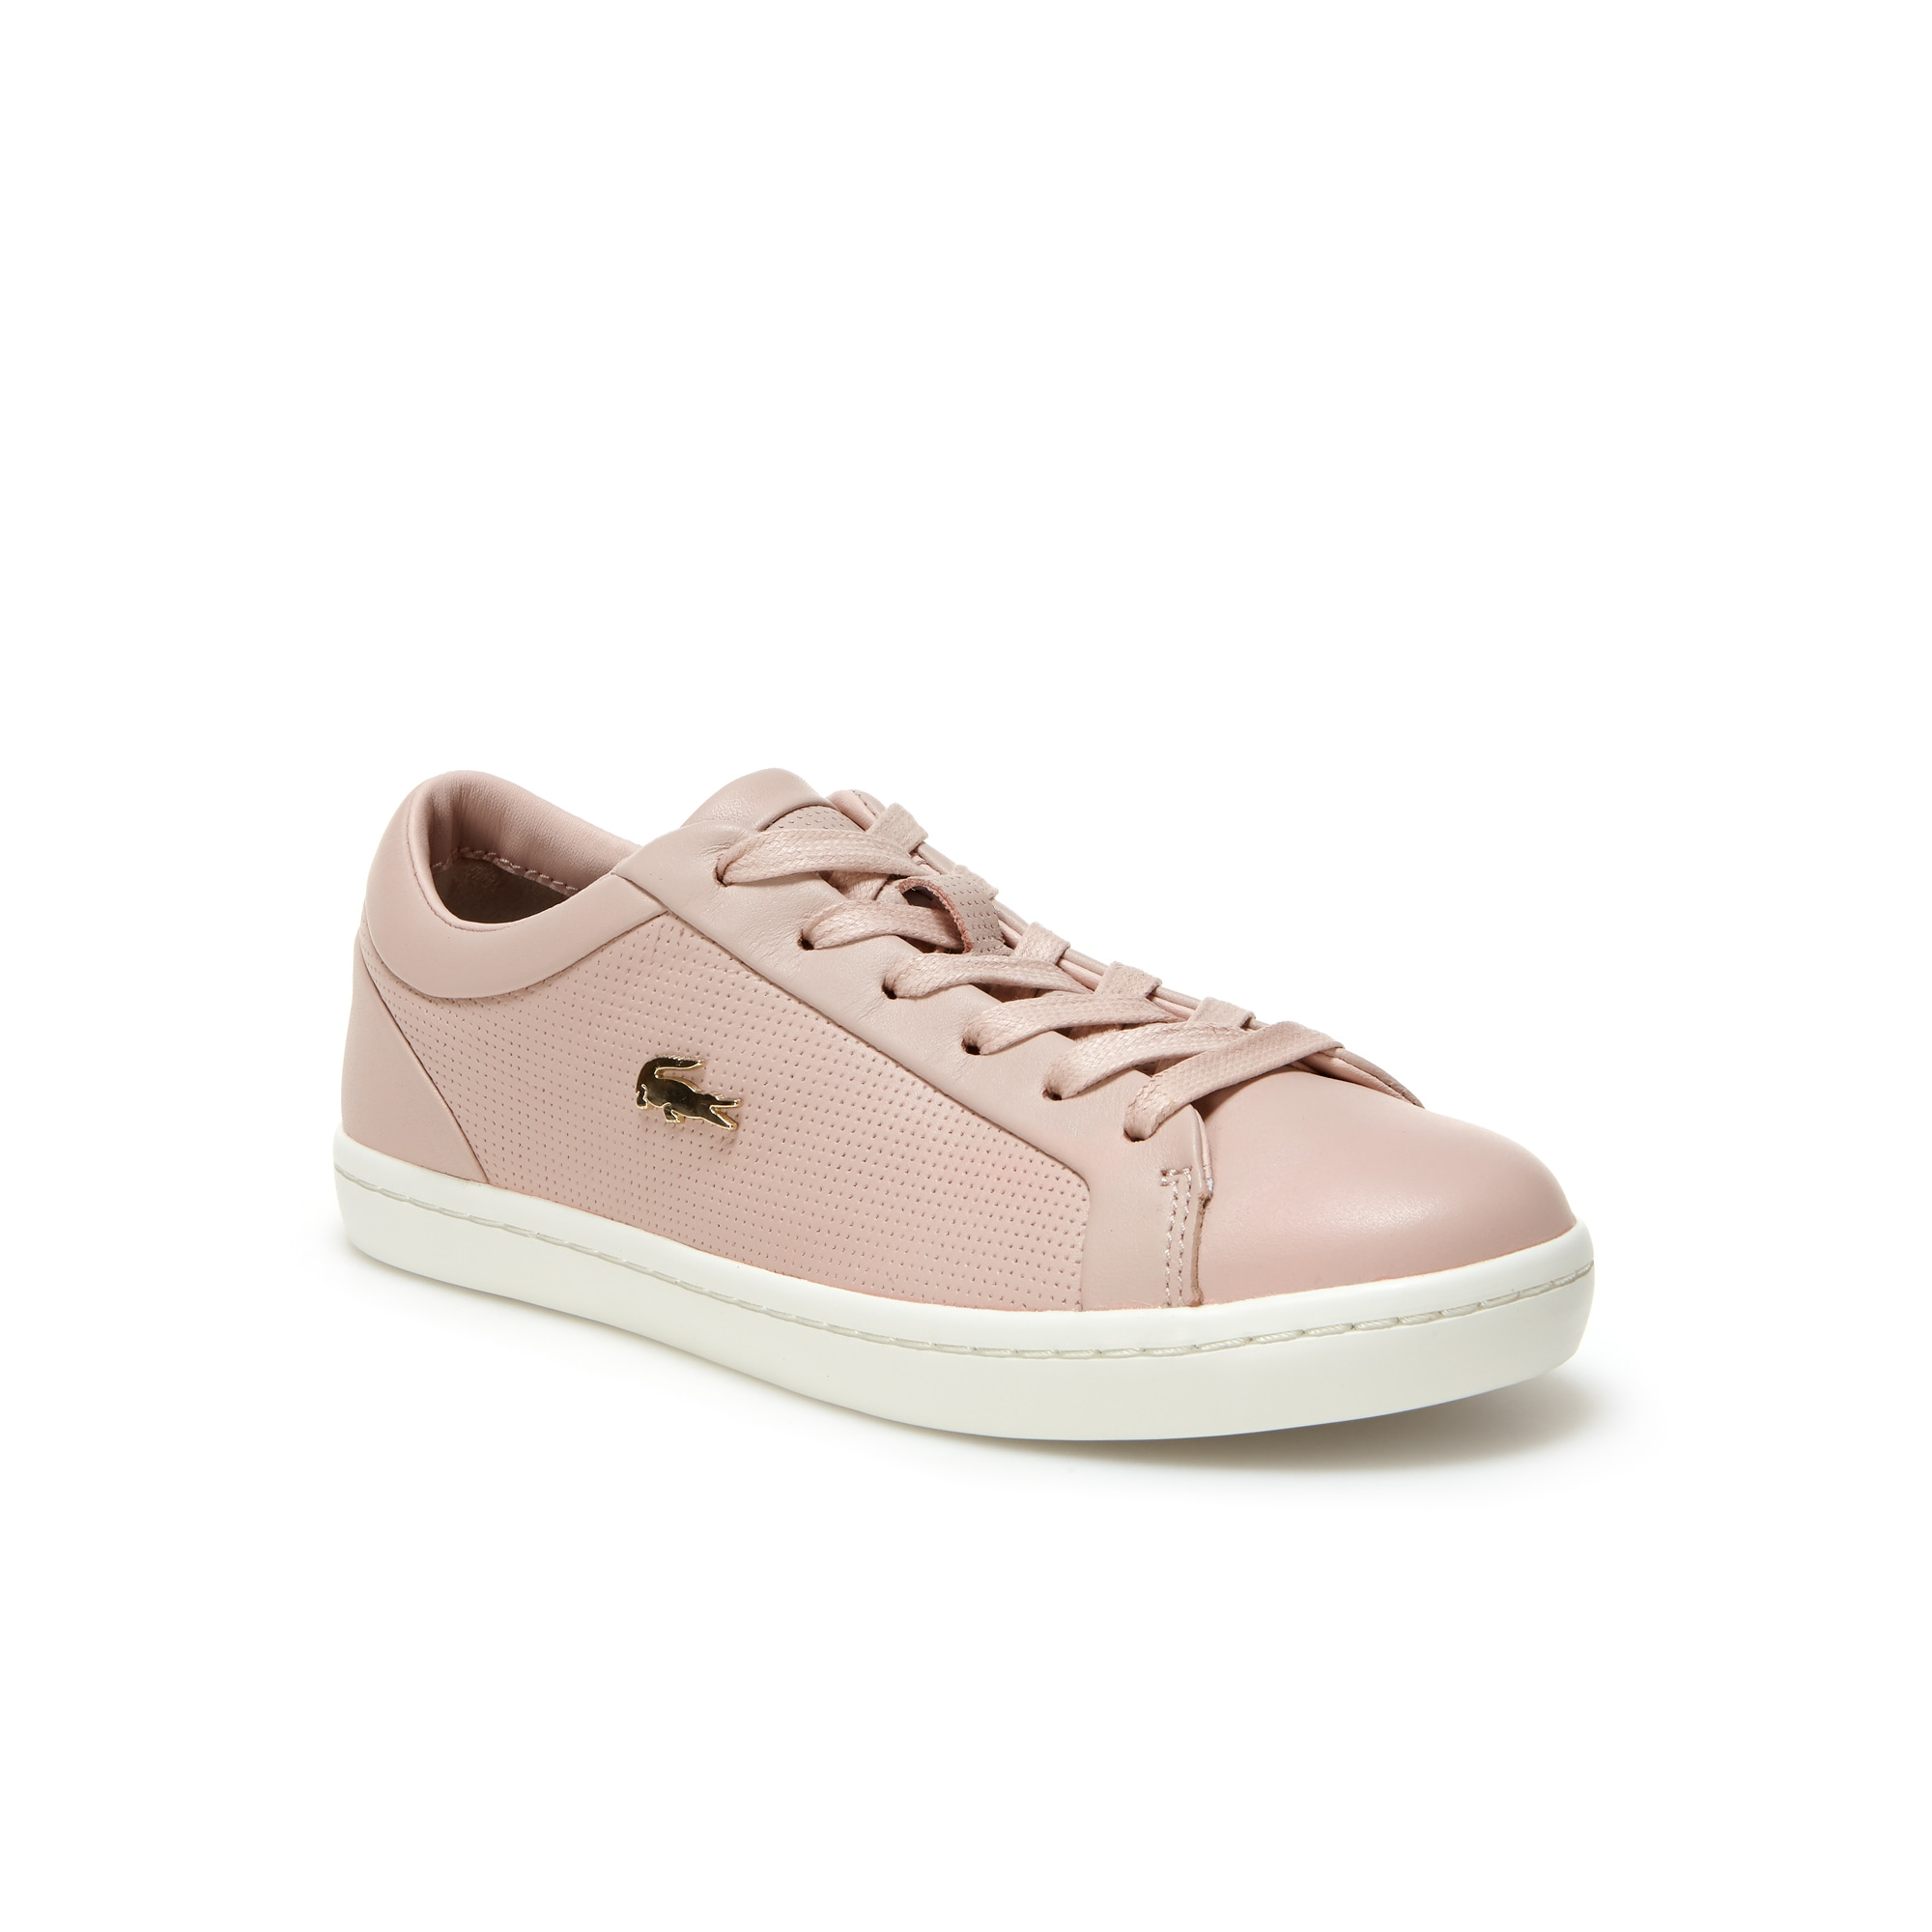 Women's Straightset Nappa Leather Trainers